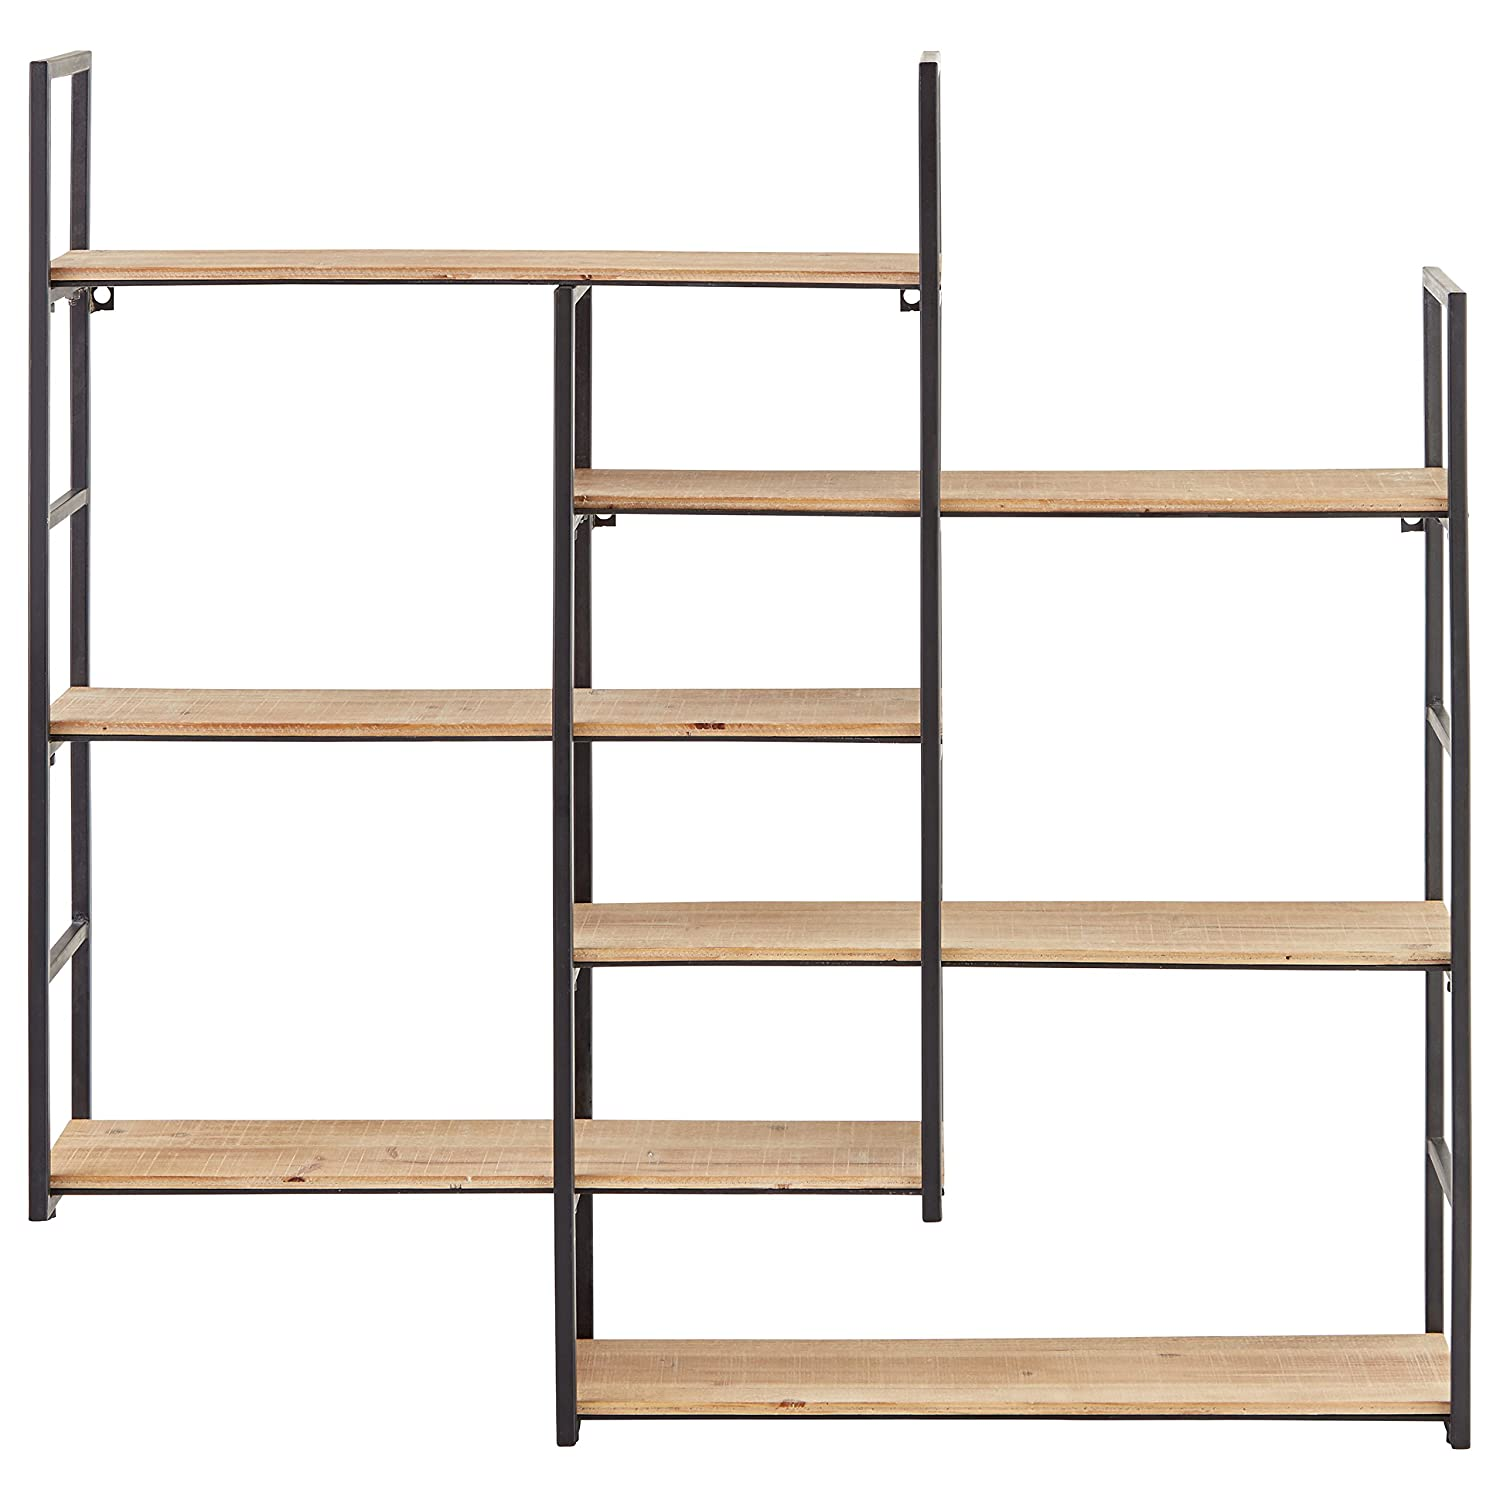 Superbe Amazon.com: Rivet Modern Wood And Metal Floating Wall Storage Shelves   36  Inch, Natural And Black: Home U0026 Kitchen